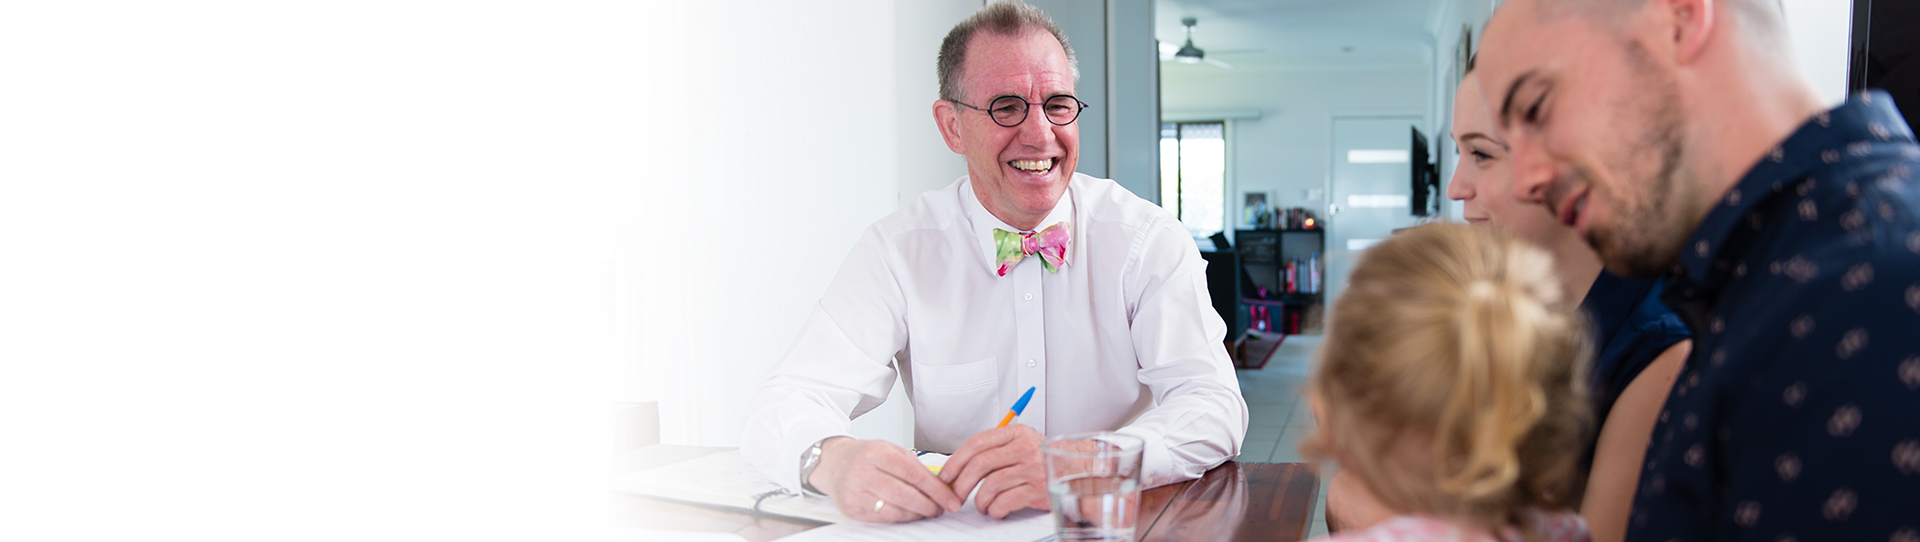 Income protection insurance australia - Bow Tie Financial Services